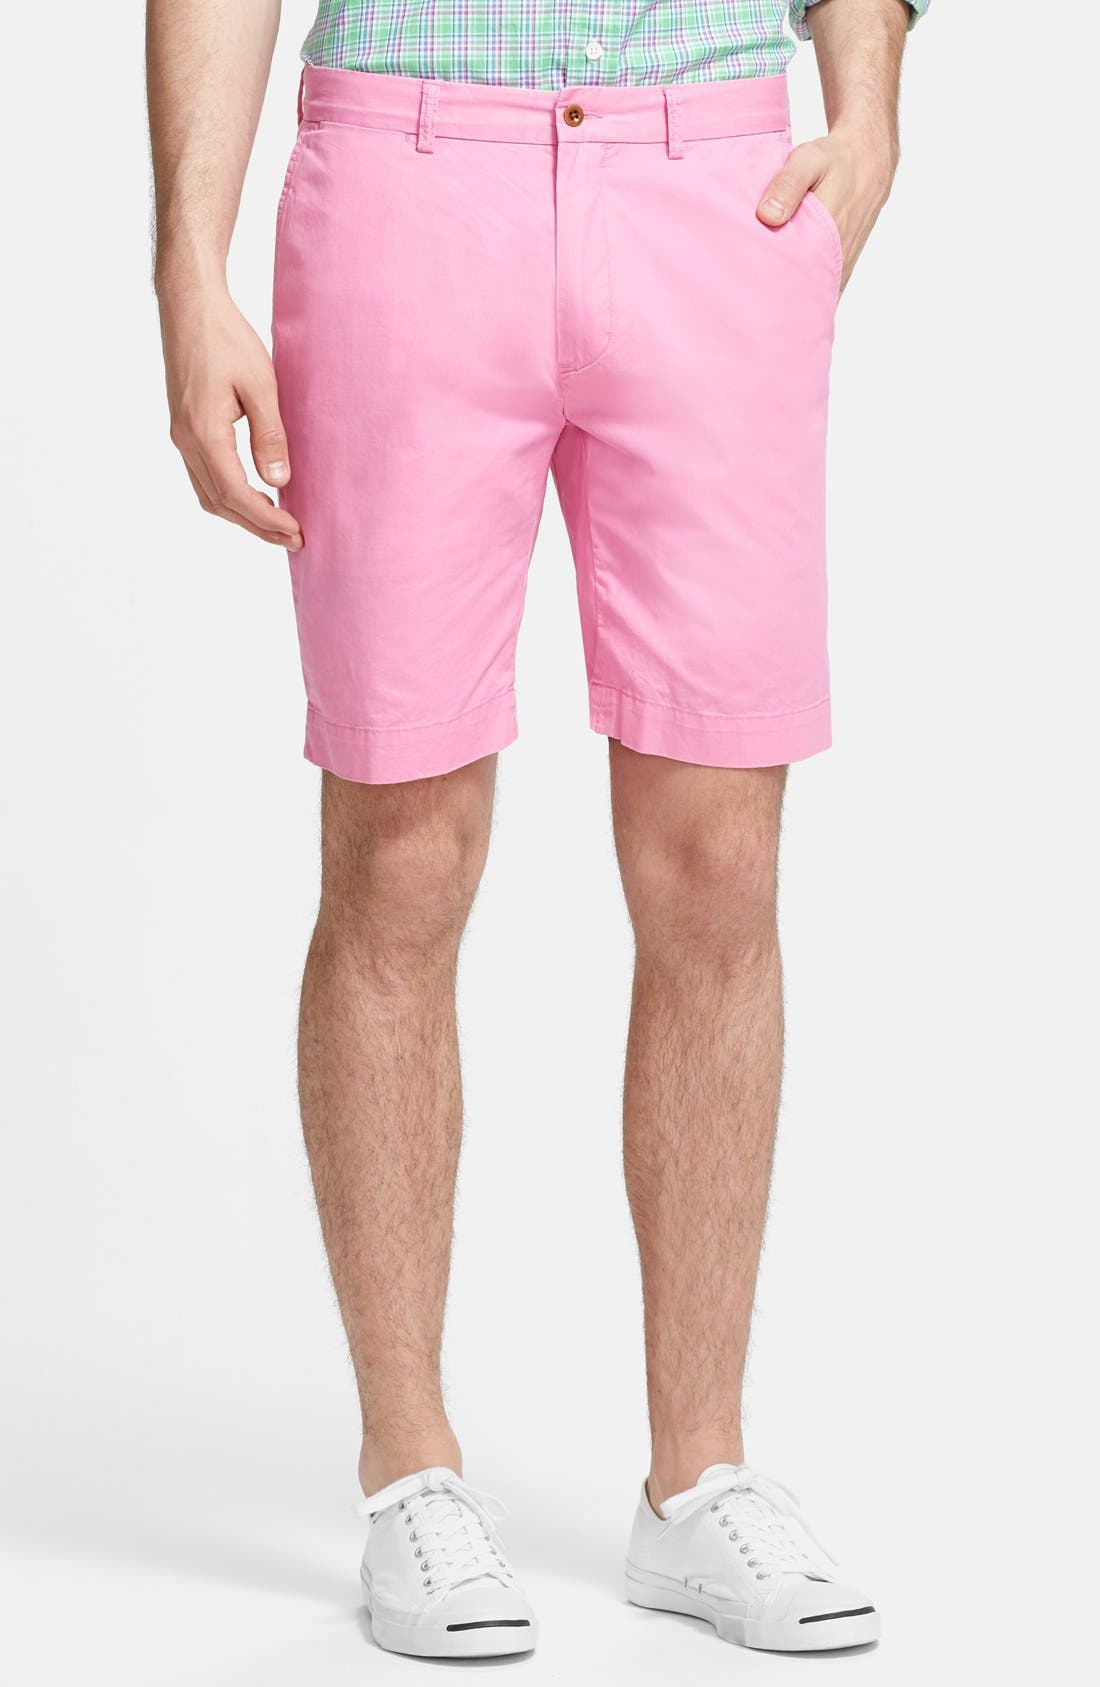 'Hudson' Flat Front Classic Fit Chino Shorts, Main, color, 670